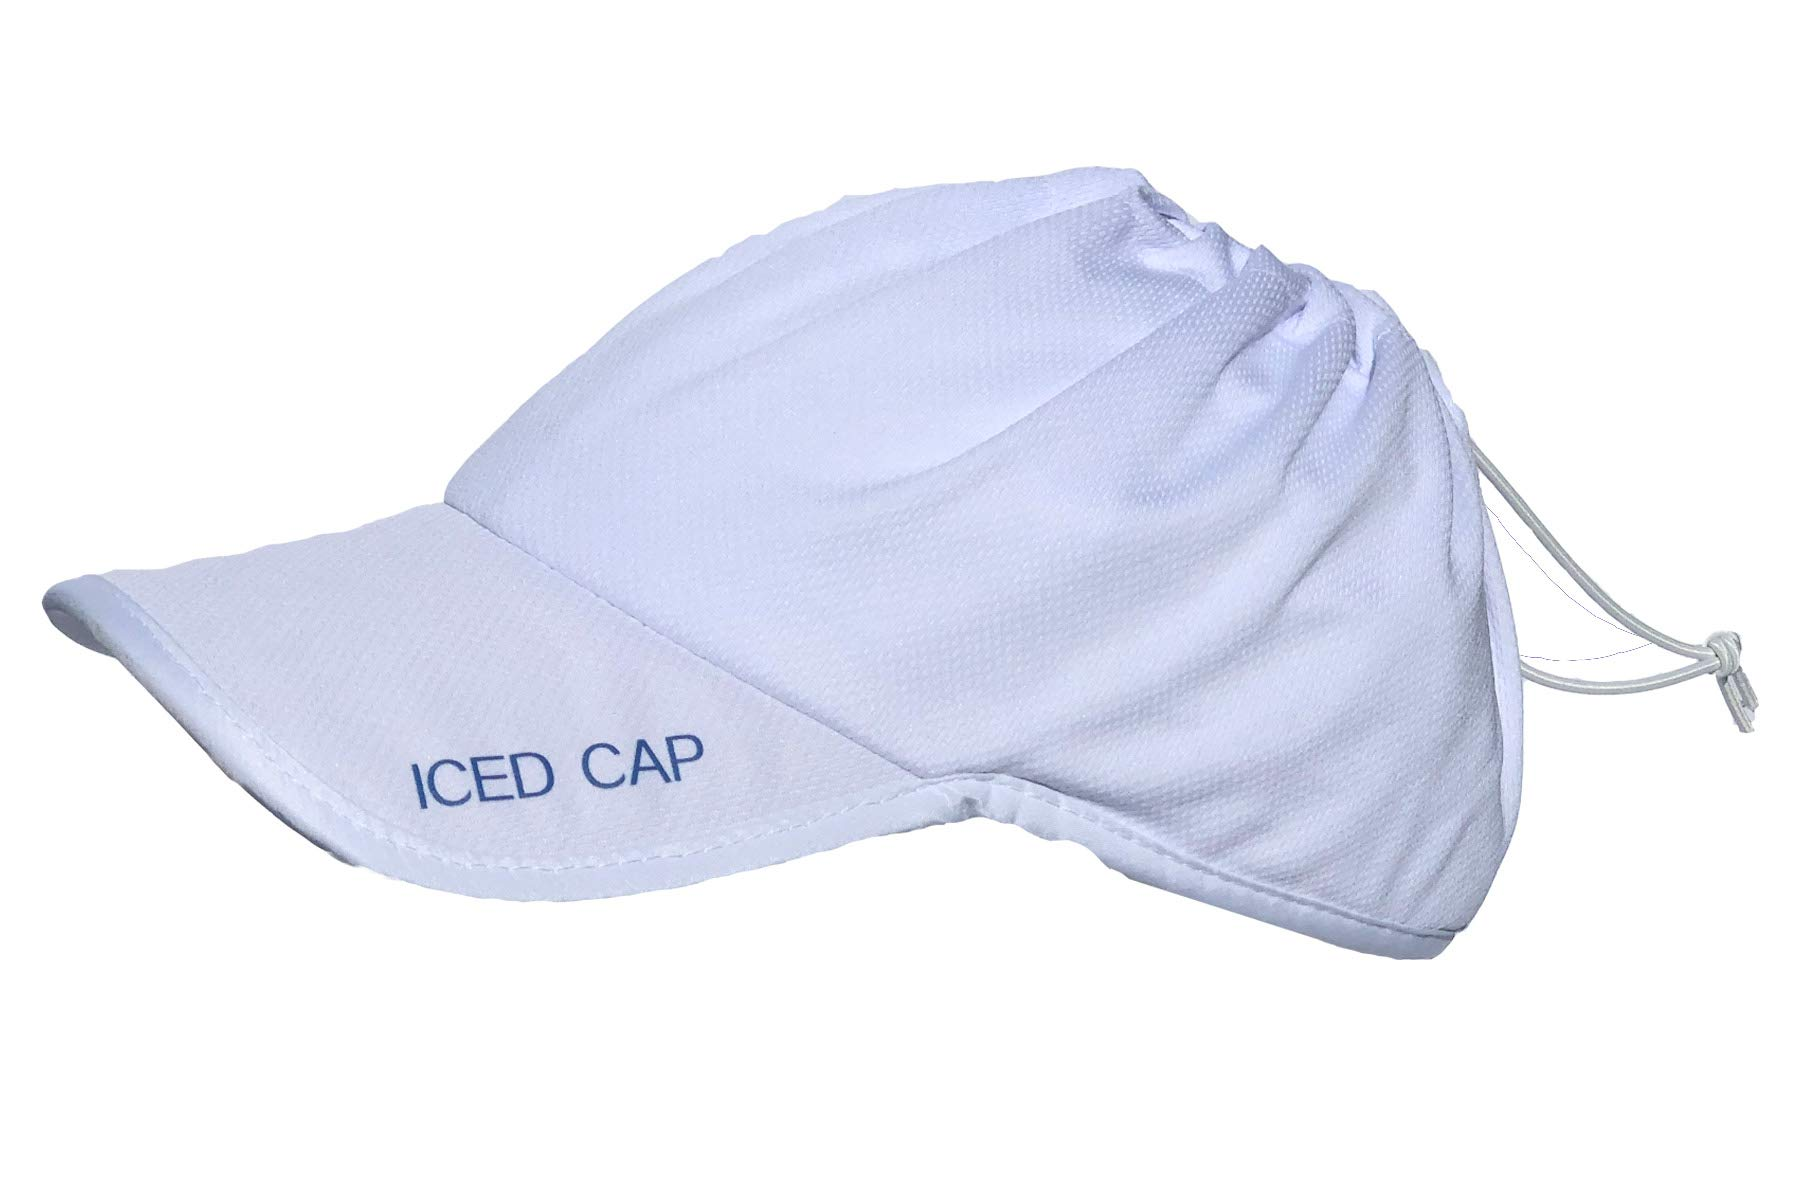 ICED Cap- Cooling Hat For Ice (4.0- White with White Trim)